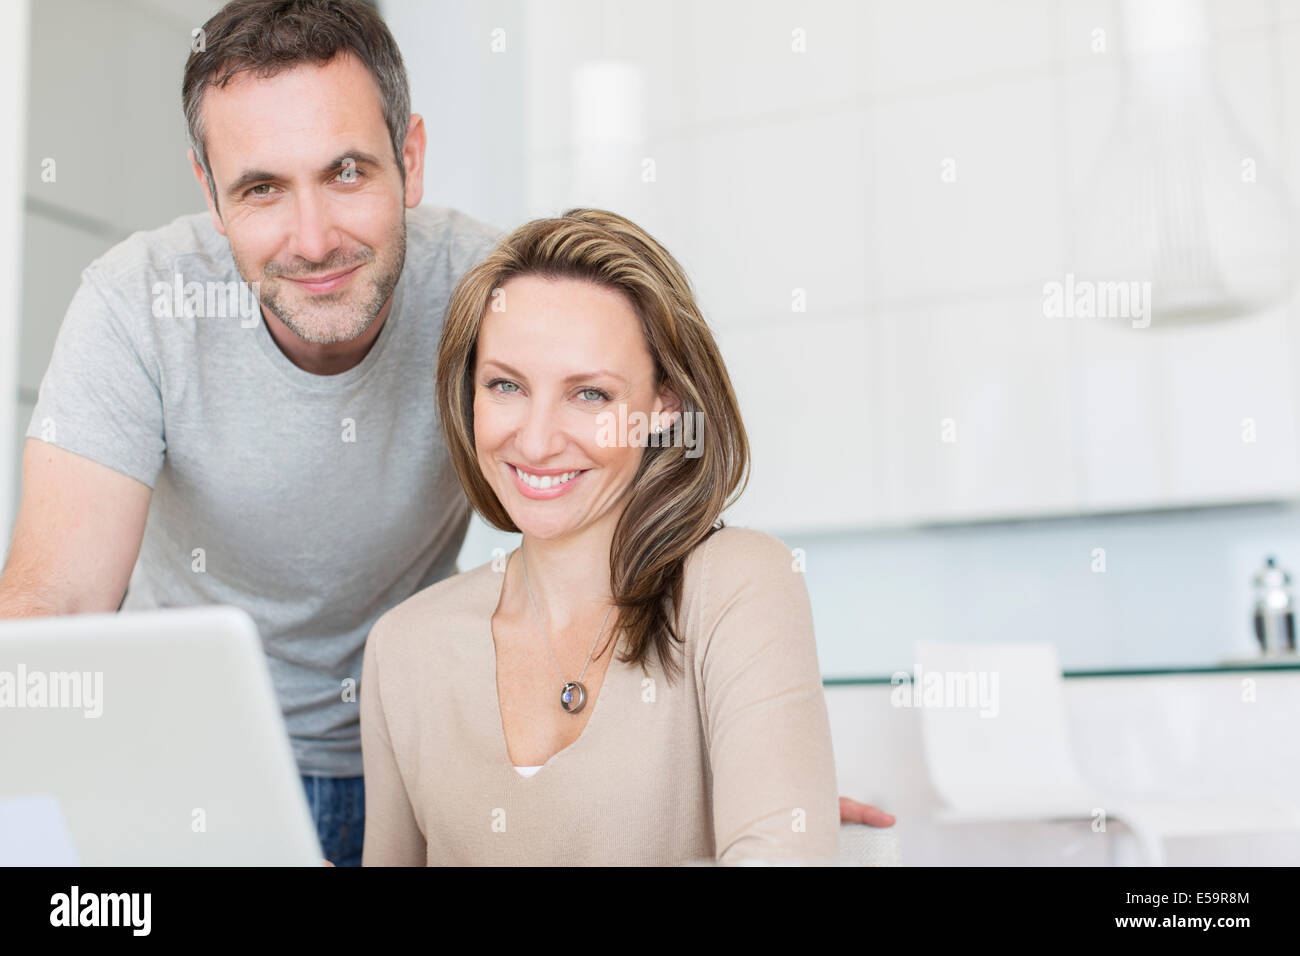 Couple smiling at laptop Photo Stock